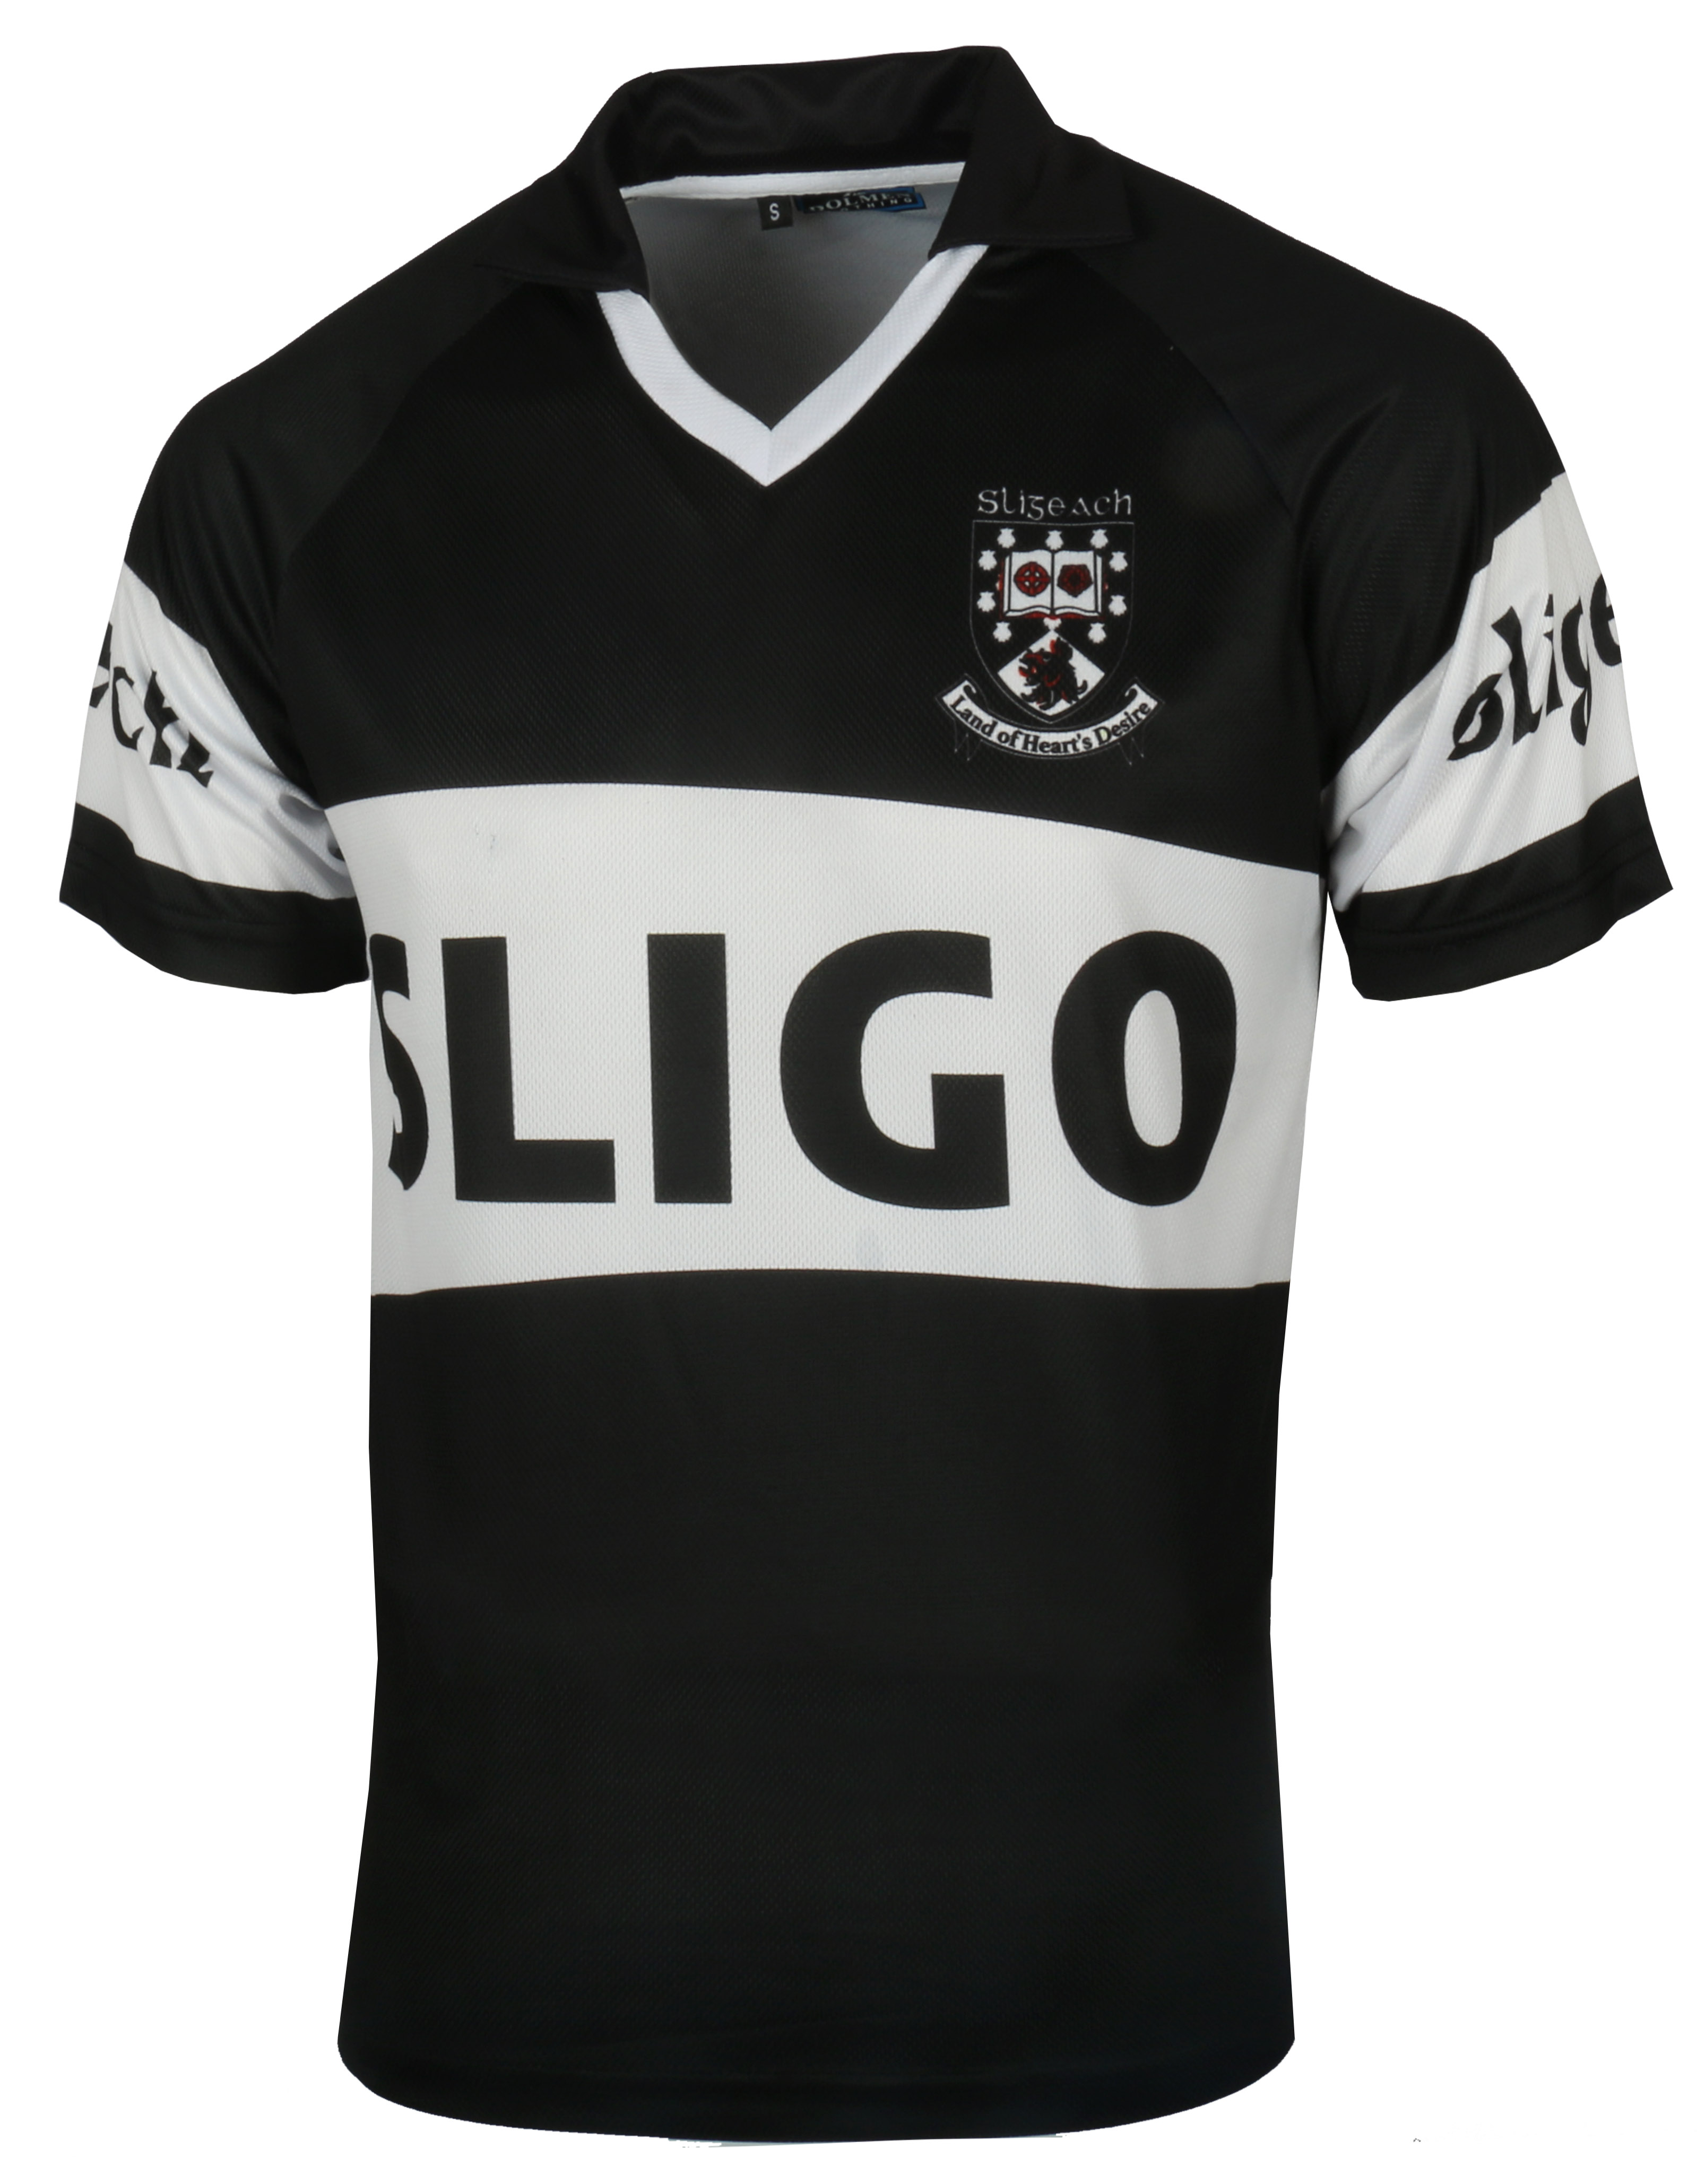 Sligo Replica Gaelic Football Jersey